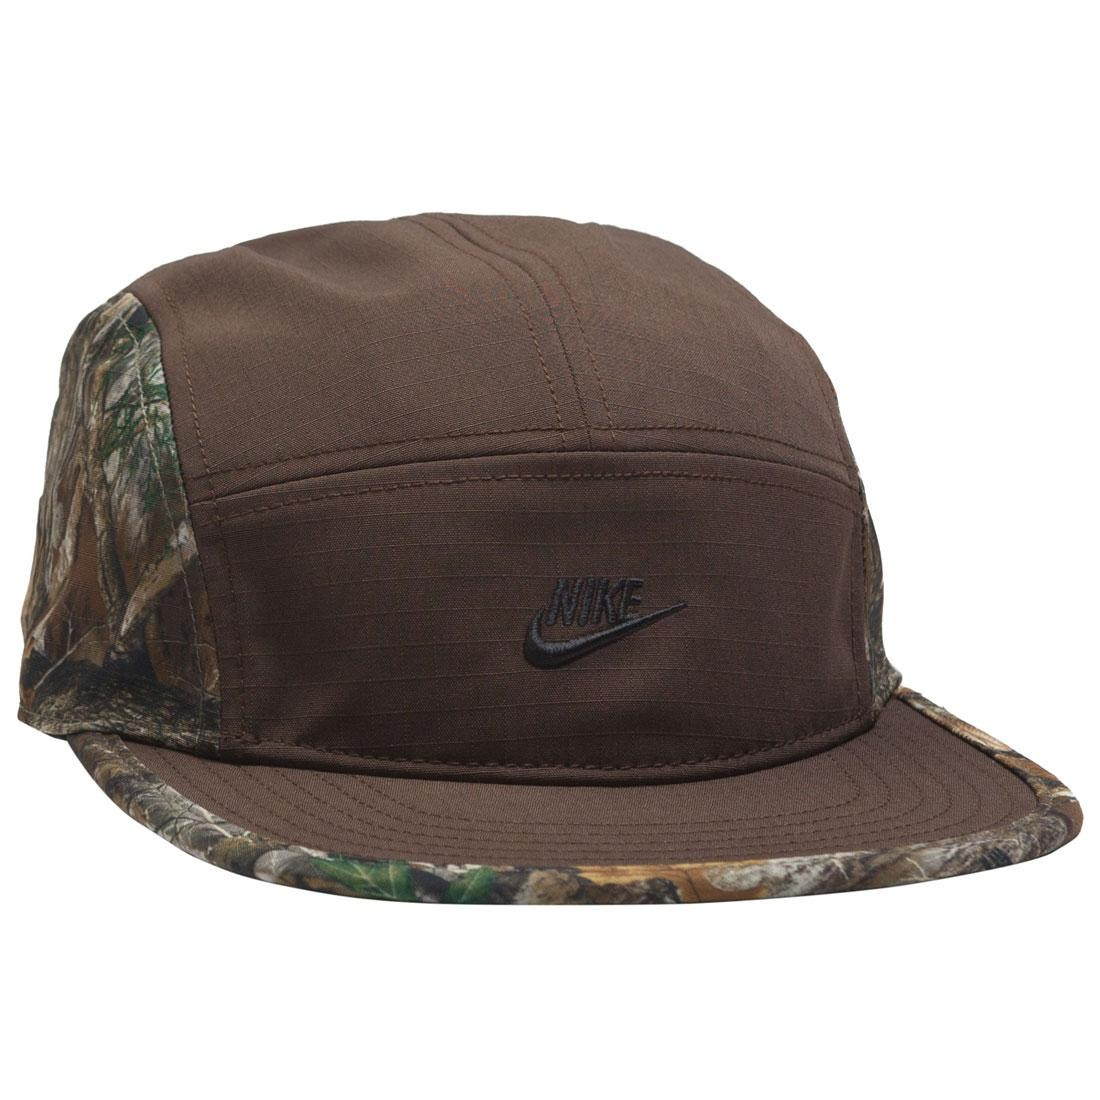 Nike Men Nrg Sportswear Aw84 Rlt Realtree Adjustable Cap (baroque brown / black)